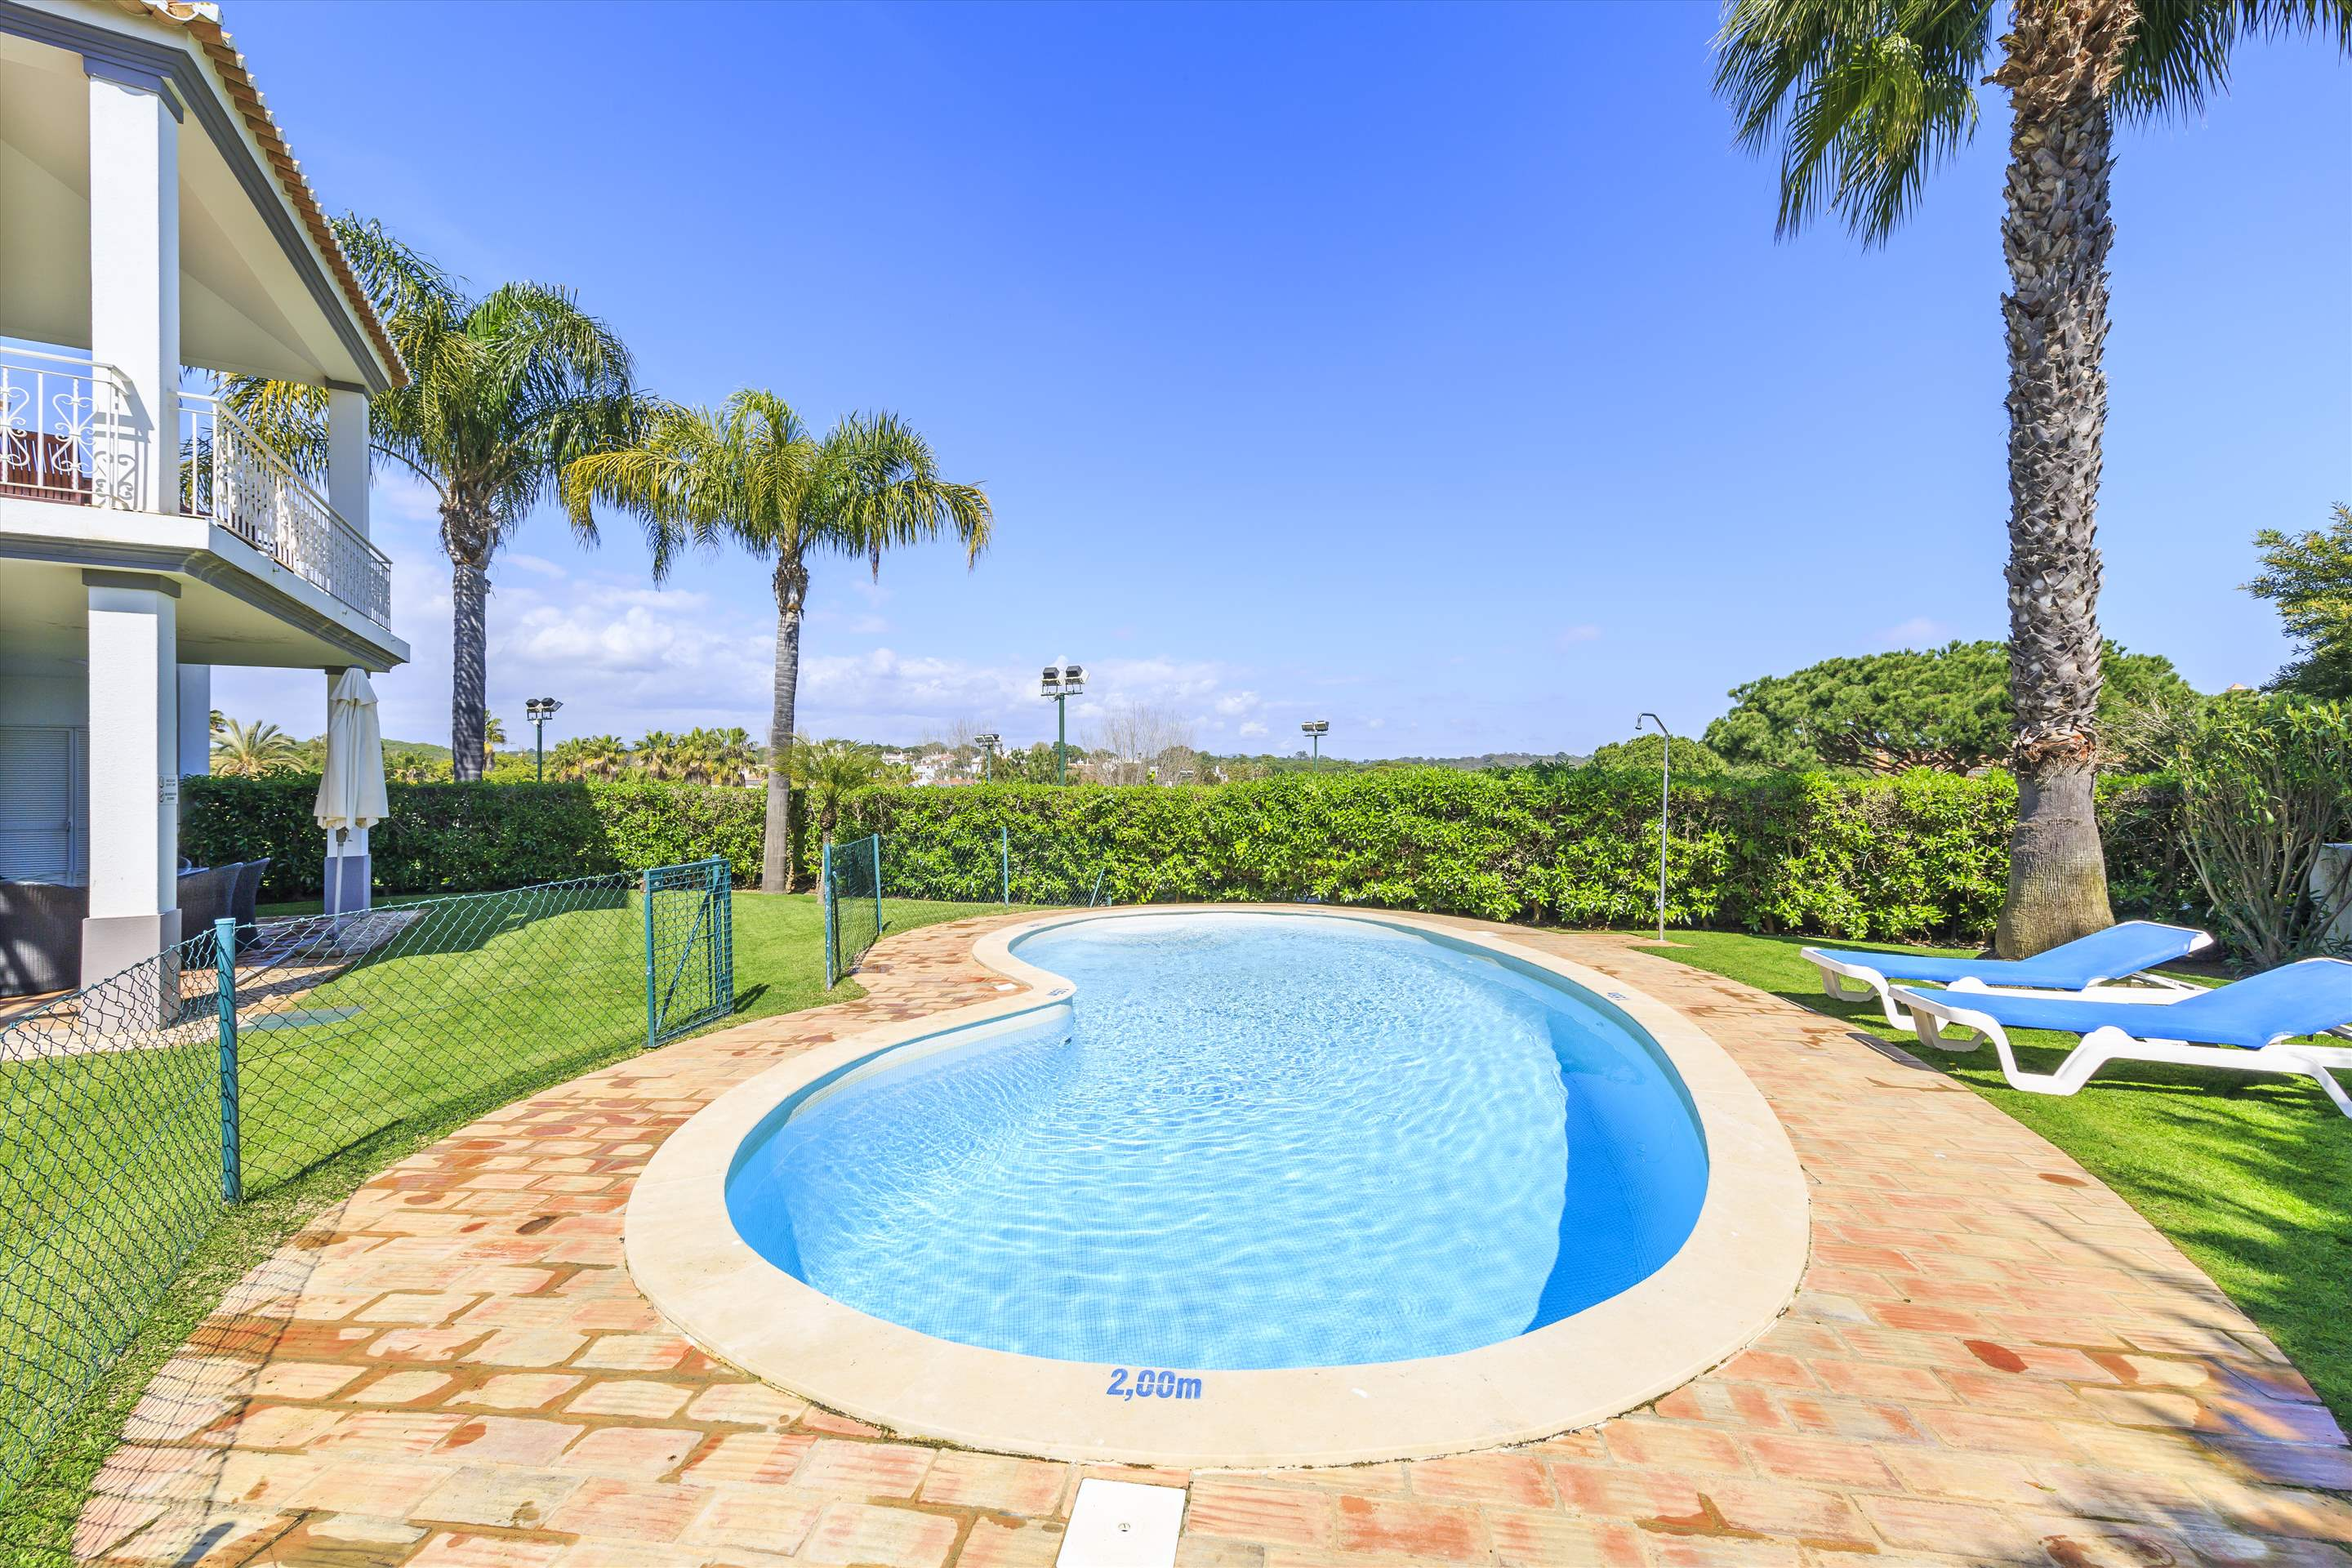 Encosta do Lago 2 Bedroom Apt, Private Pool, 2 bedroom apartment in Encosta do Lago Resort, Algarve Photo #2